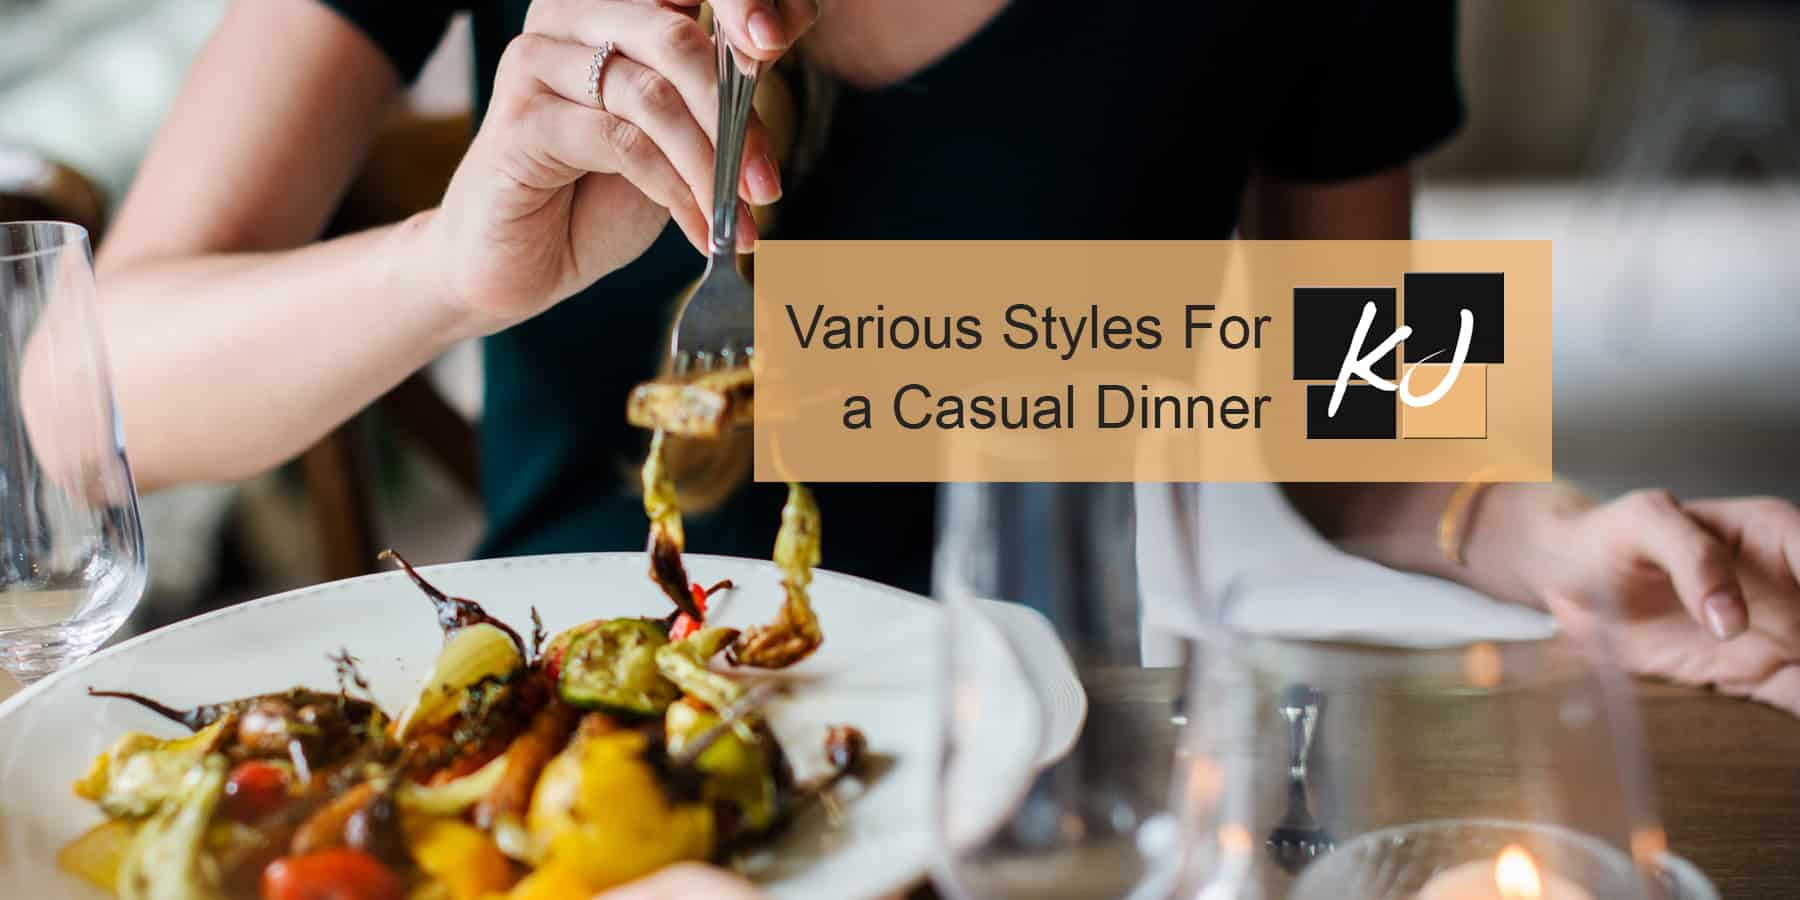 Various Styles You Can Pull Off for a Casual Dinner